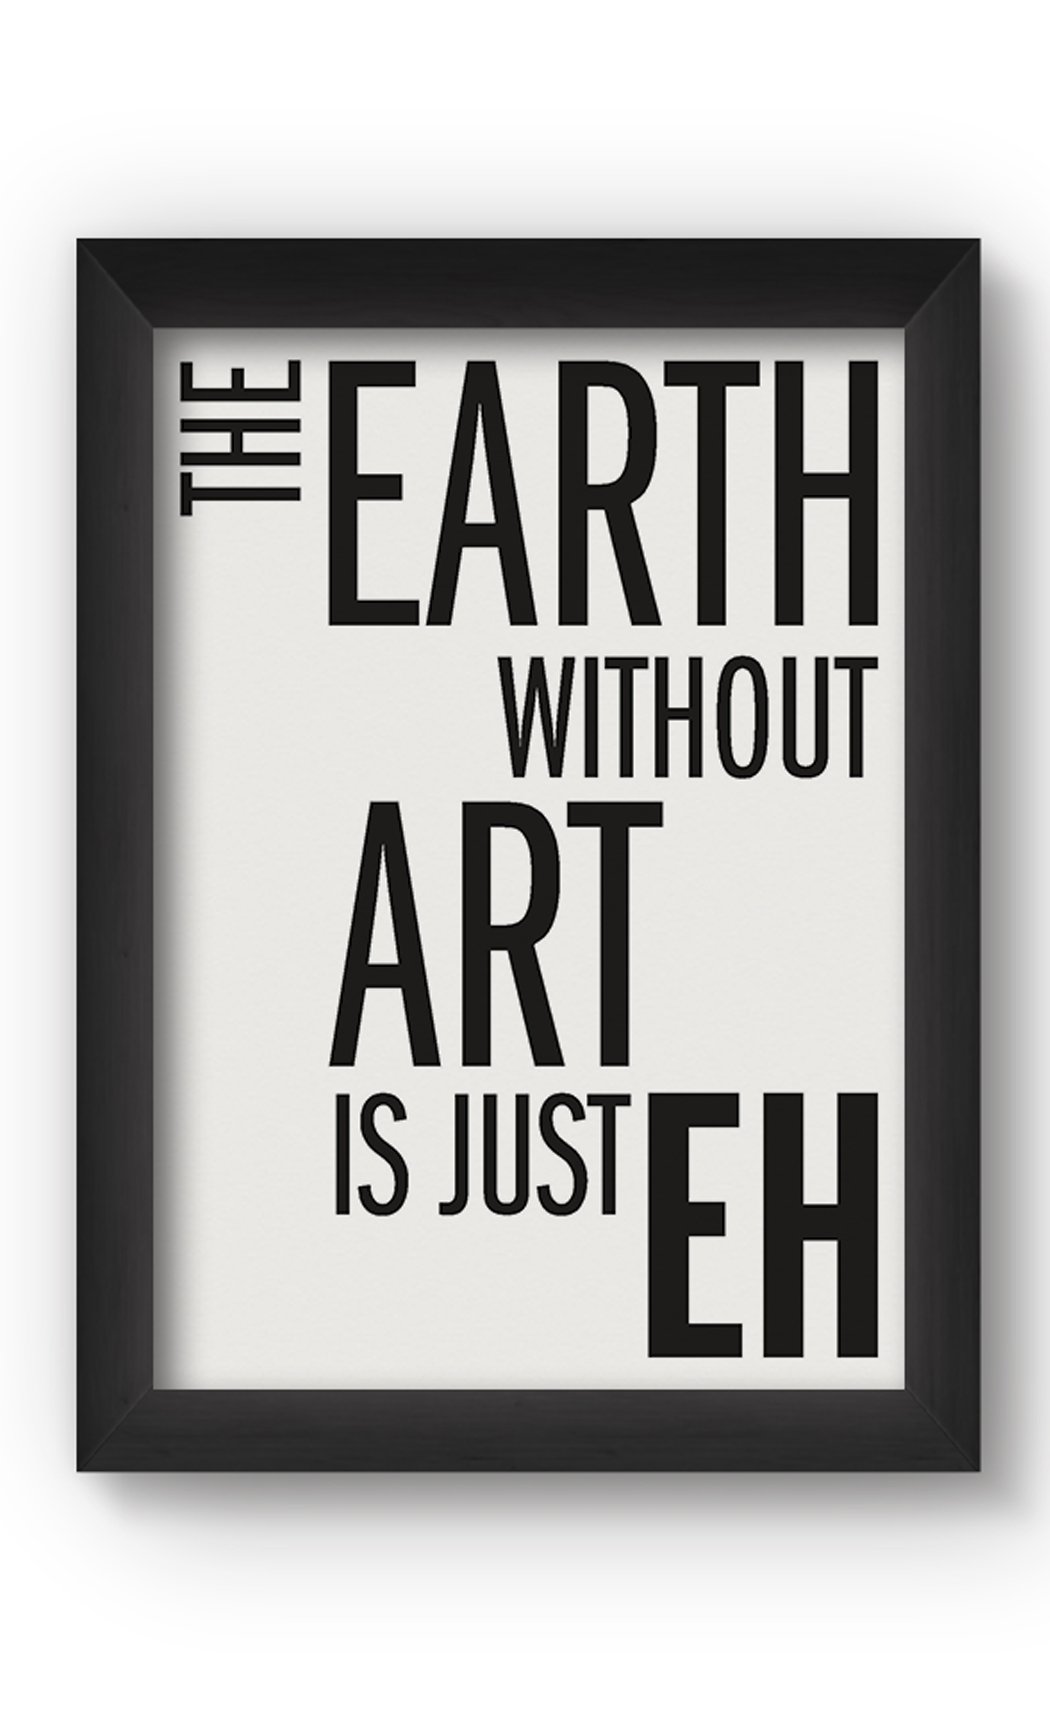 THE EARTH Poster. Buy Online.